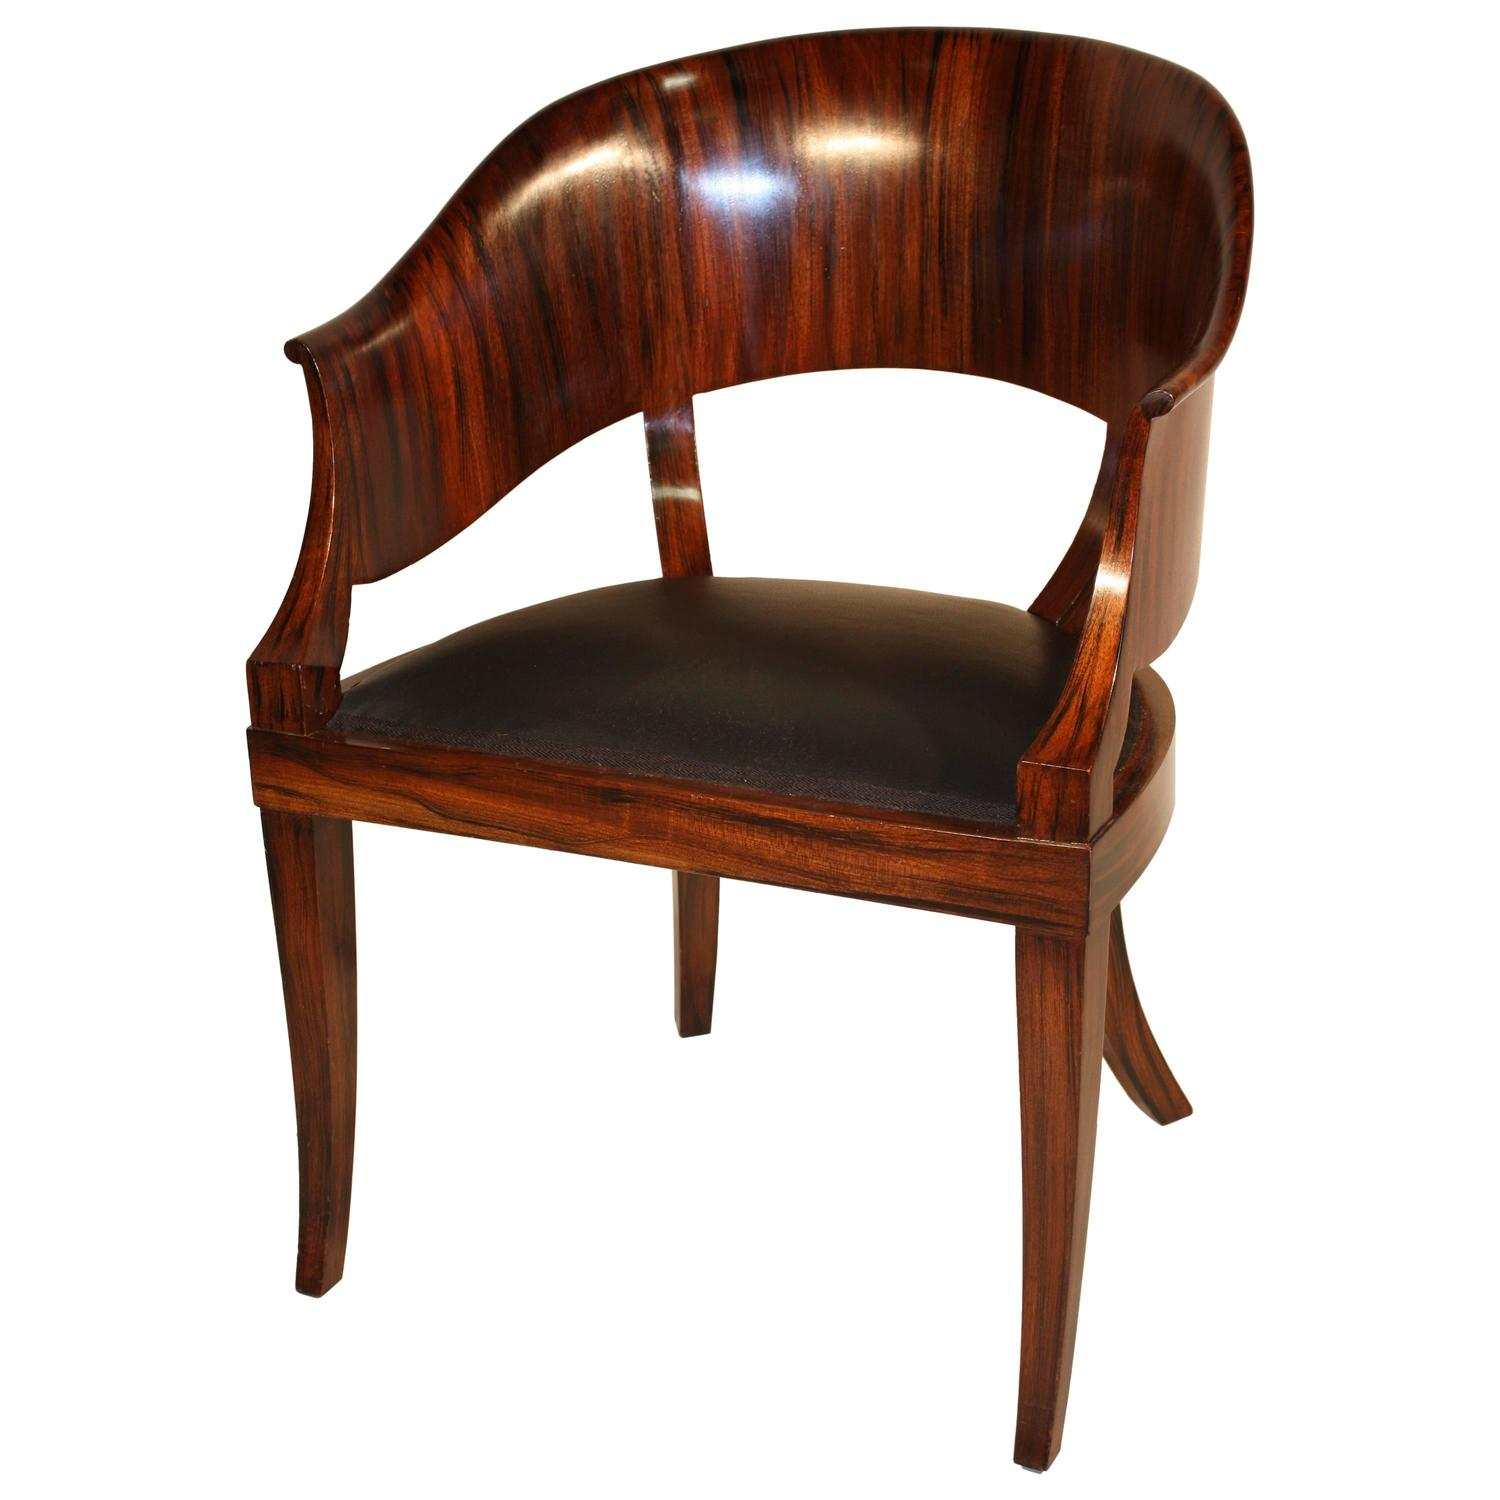 Artistic Chairs French Art Deco Desk Chair At 1stdibs